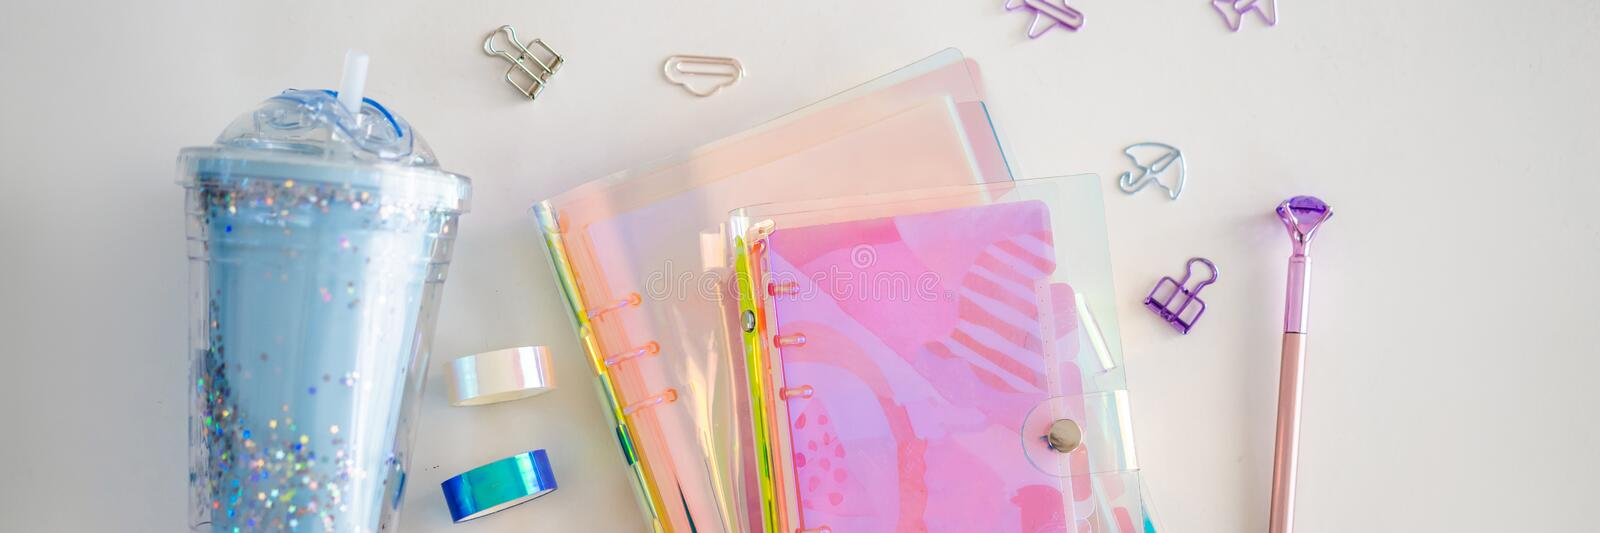 Notepad and stationery on white background. Planner for business and study. Fans of stationery BANNER, LONG FORMAT. Notepad and stationery on white background stock images